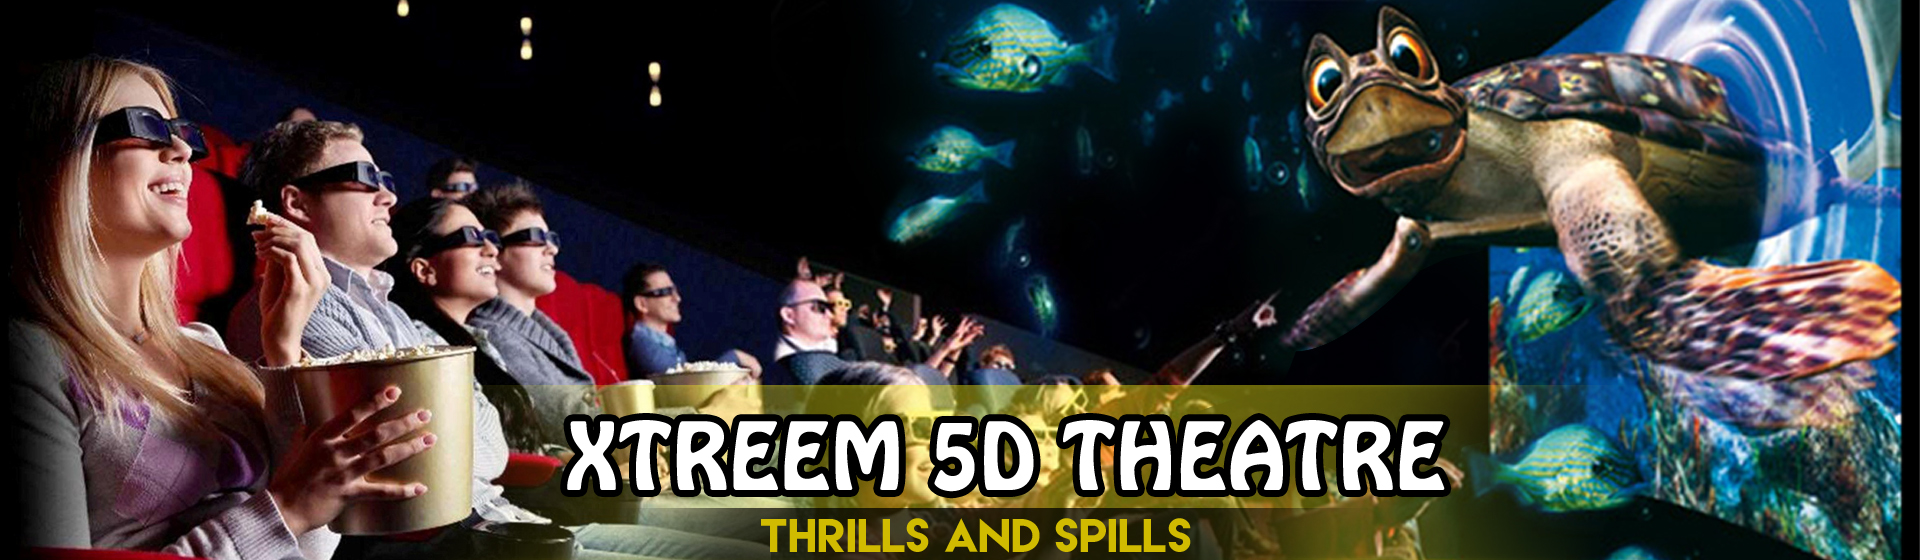 xtream-5d-theatre-image